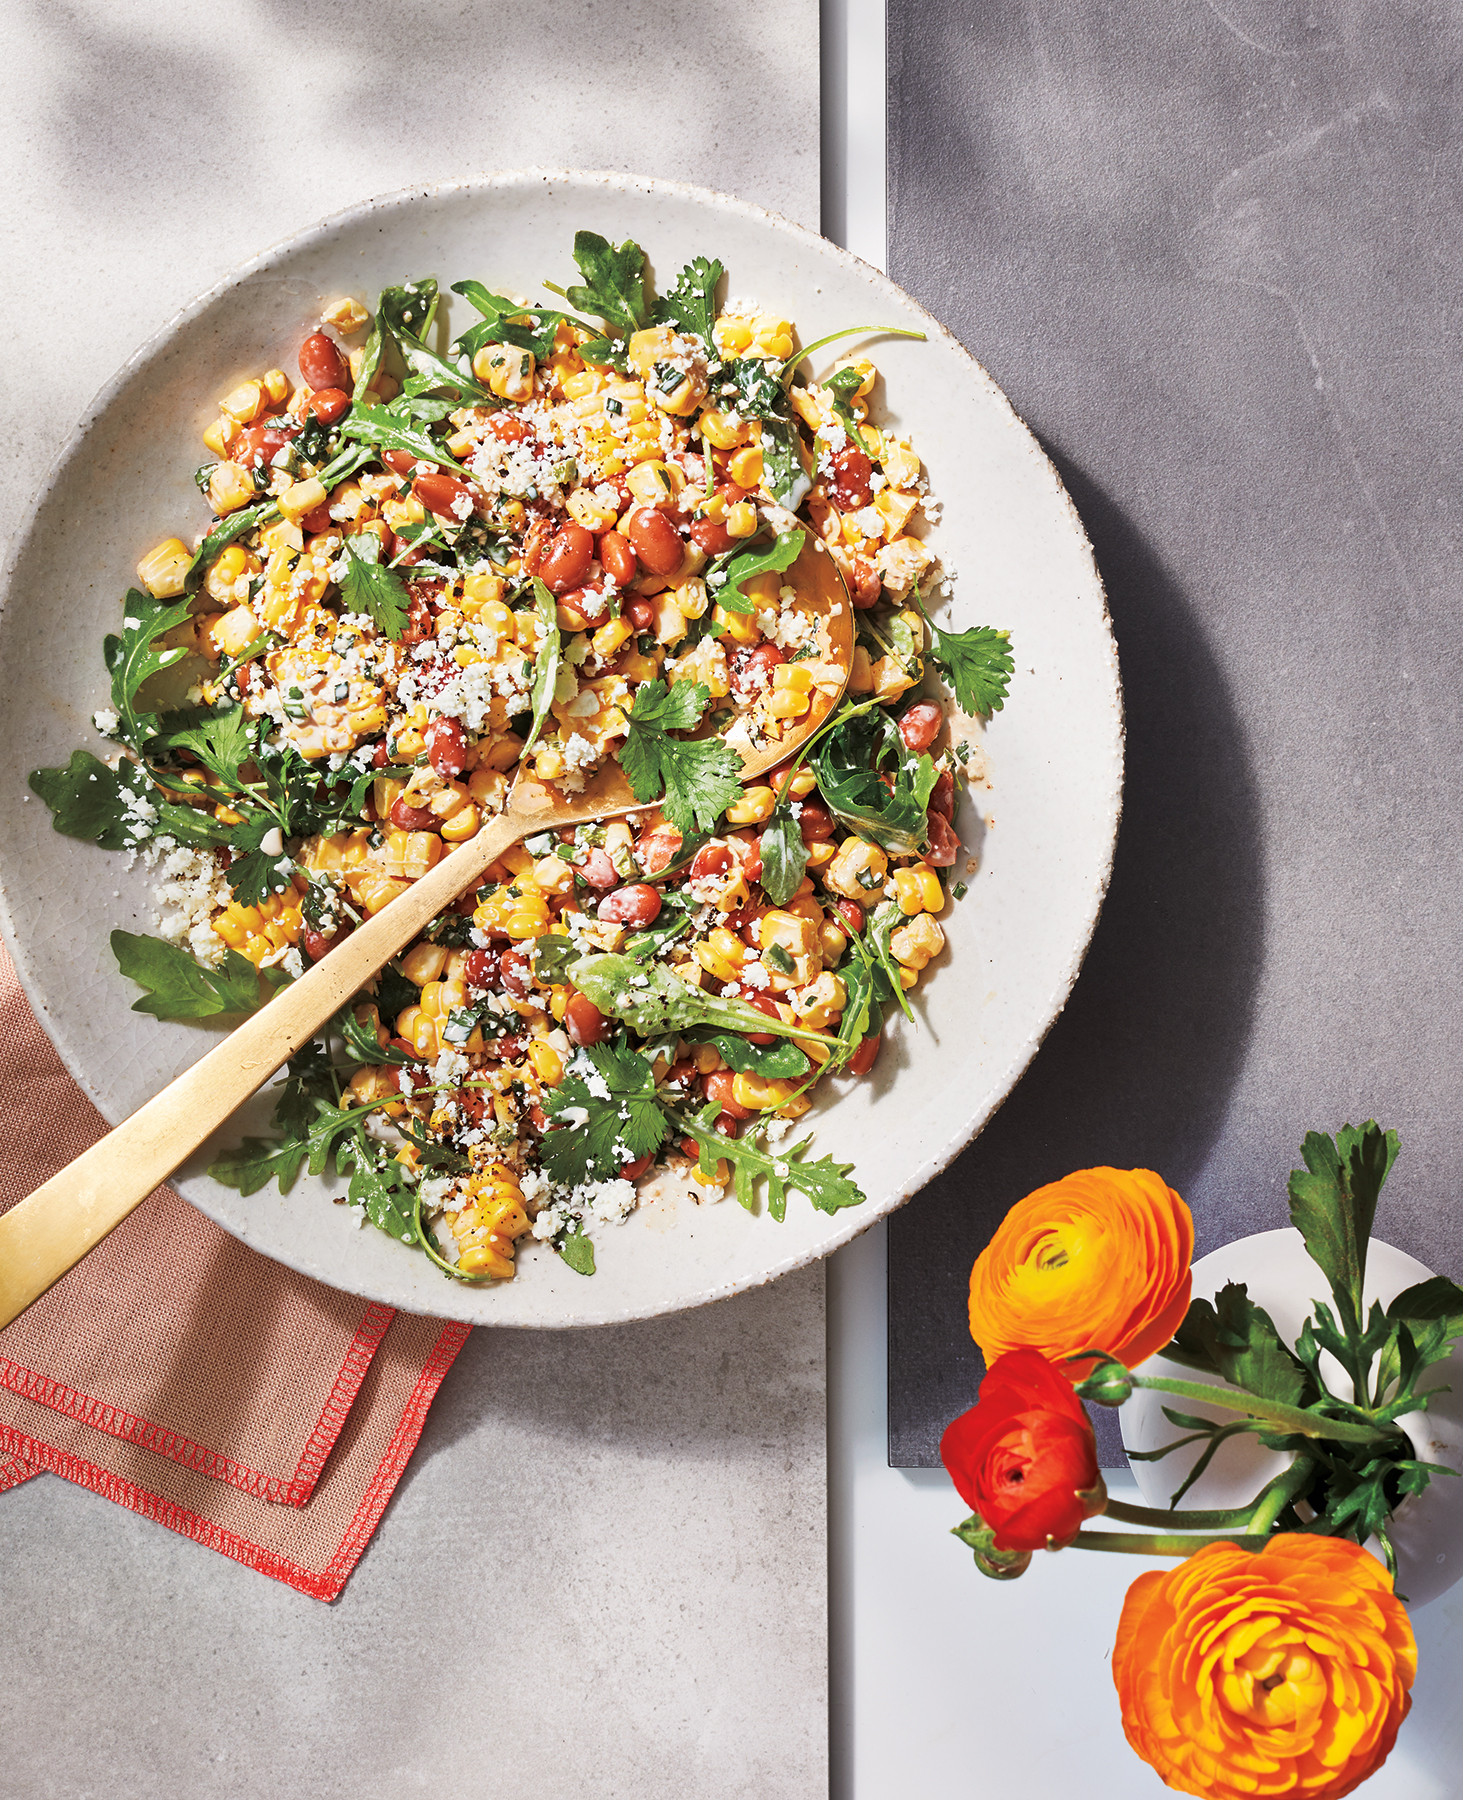 Spicy Street Corn Salad